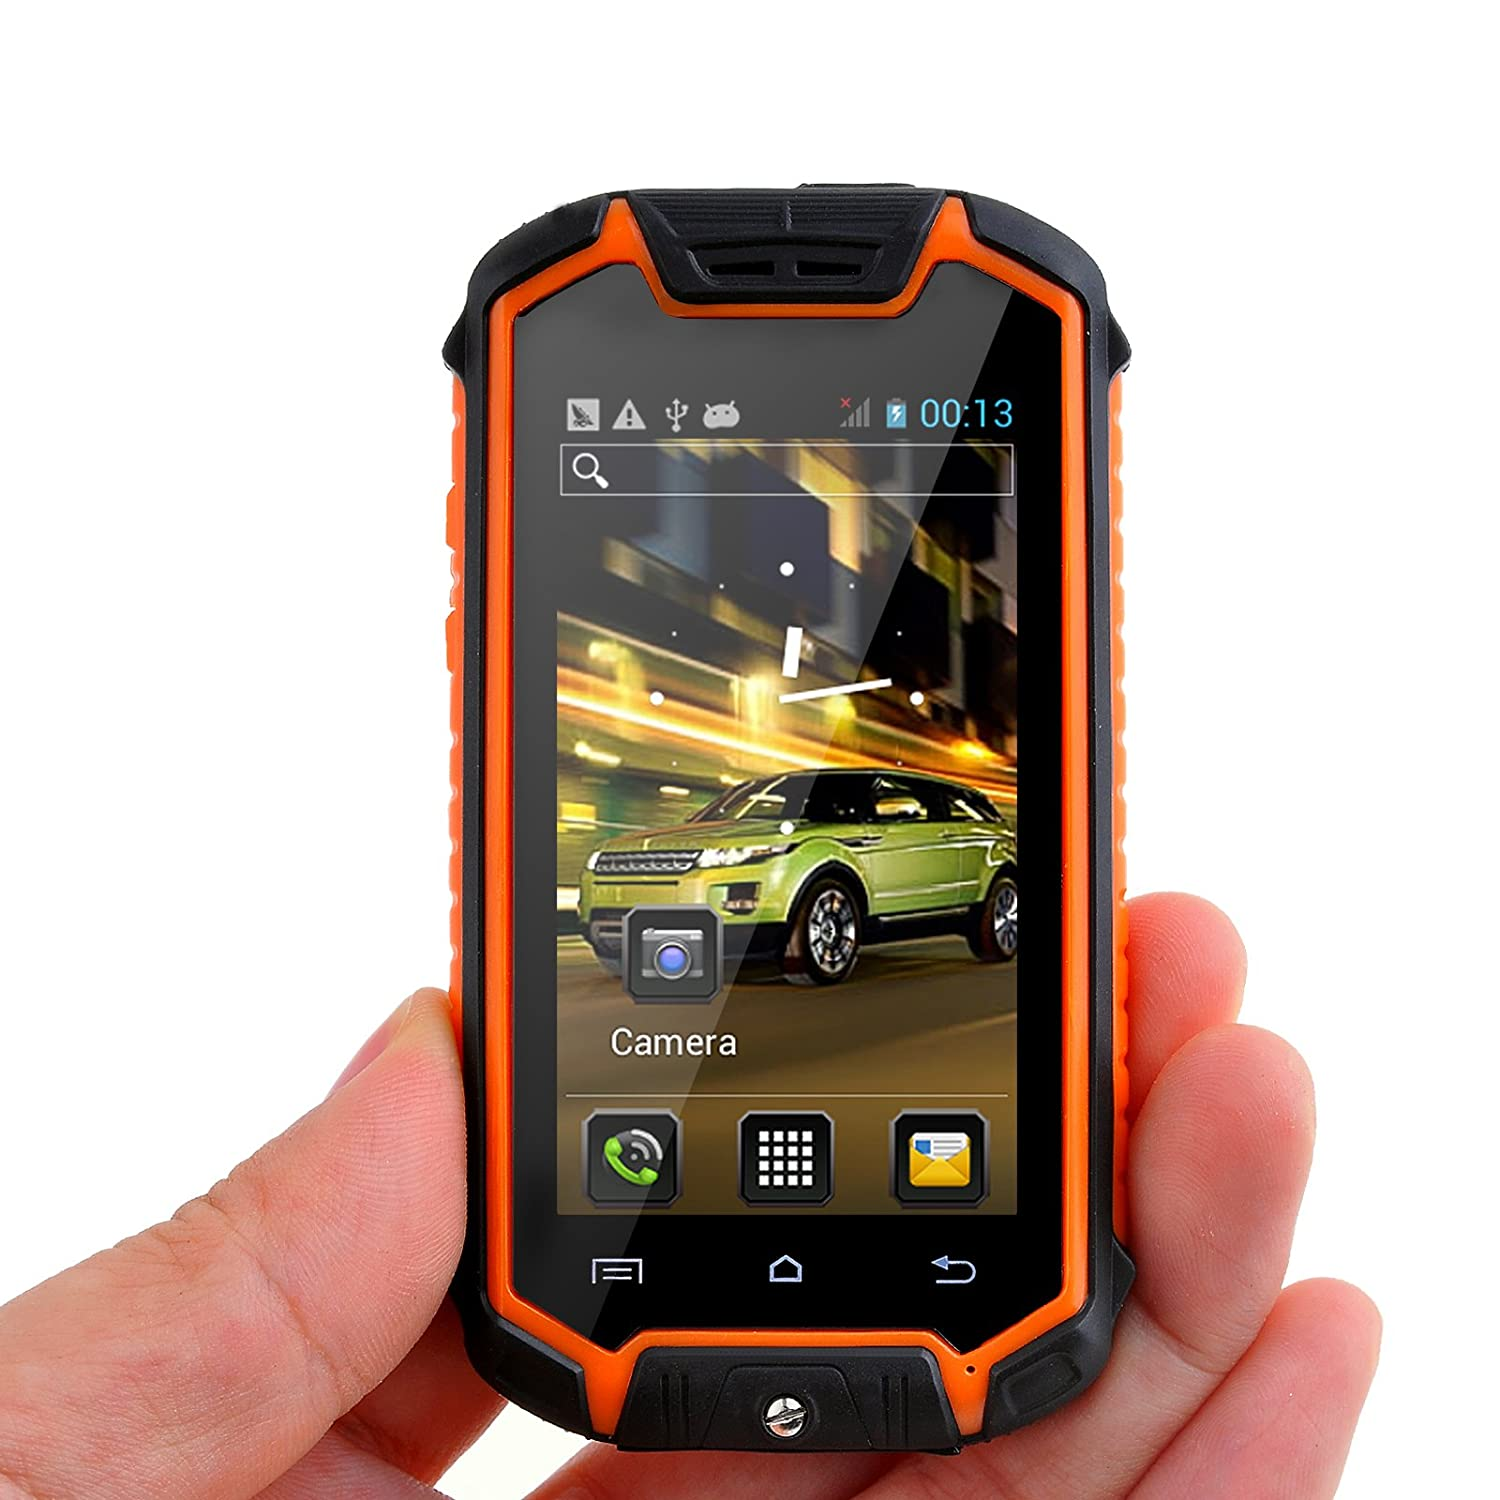 "Discovery Z18 Unlocked Android 4.2 Smartphone Dual SIM Dual Core Outdoor Waterproof Dust-proof 2.45"" Mini Cell Phone (Orange)"